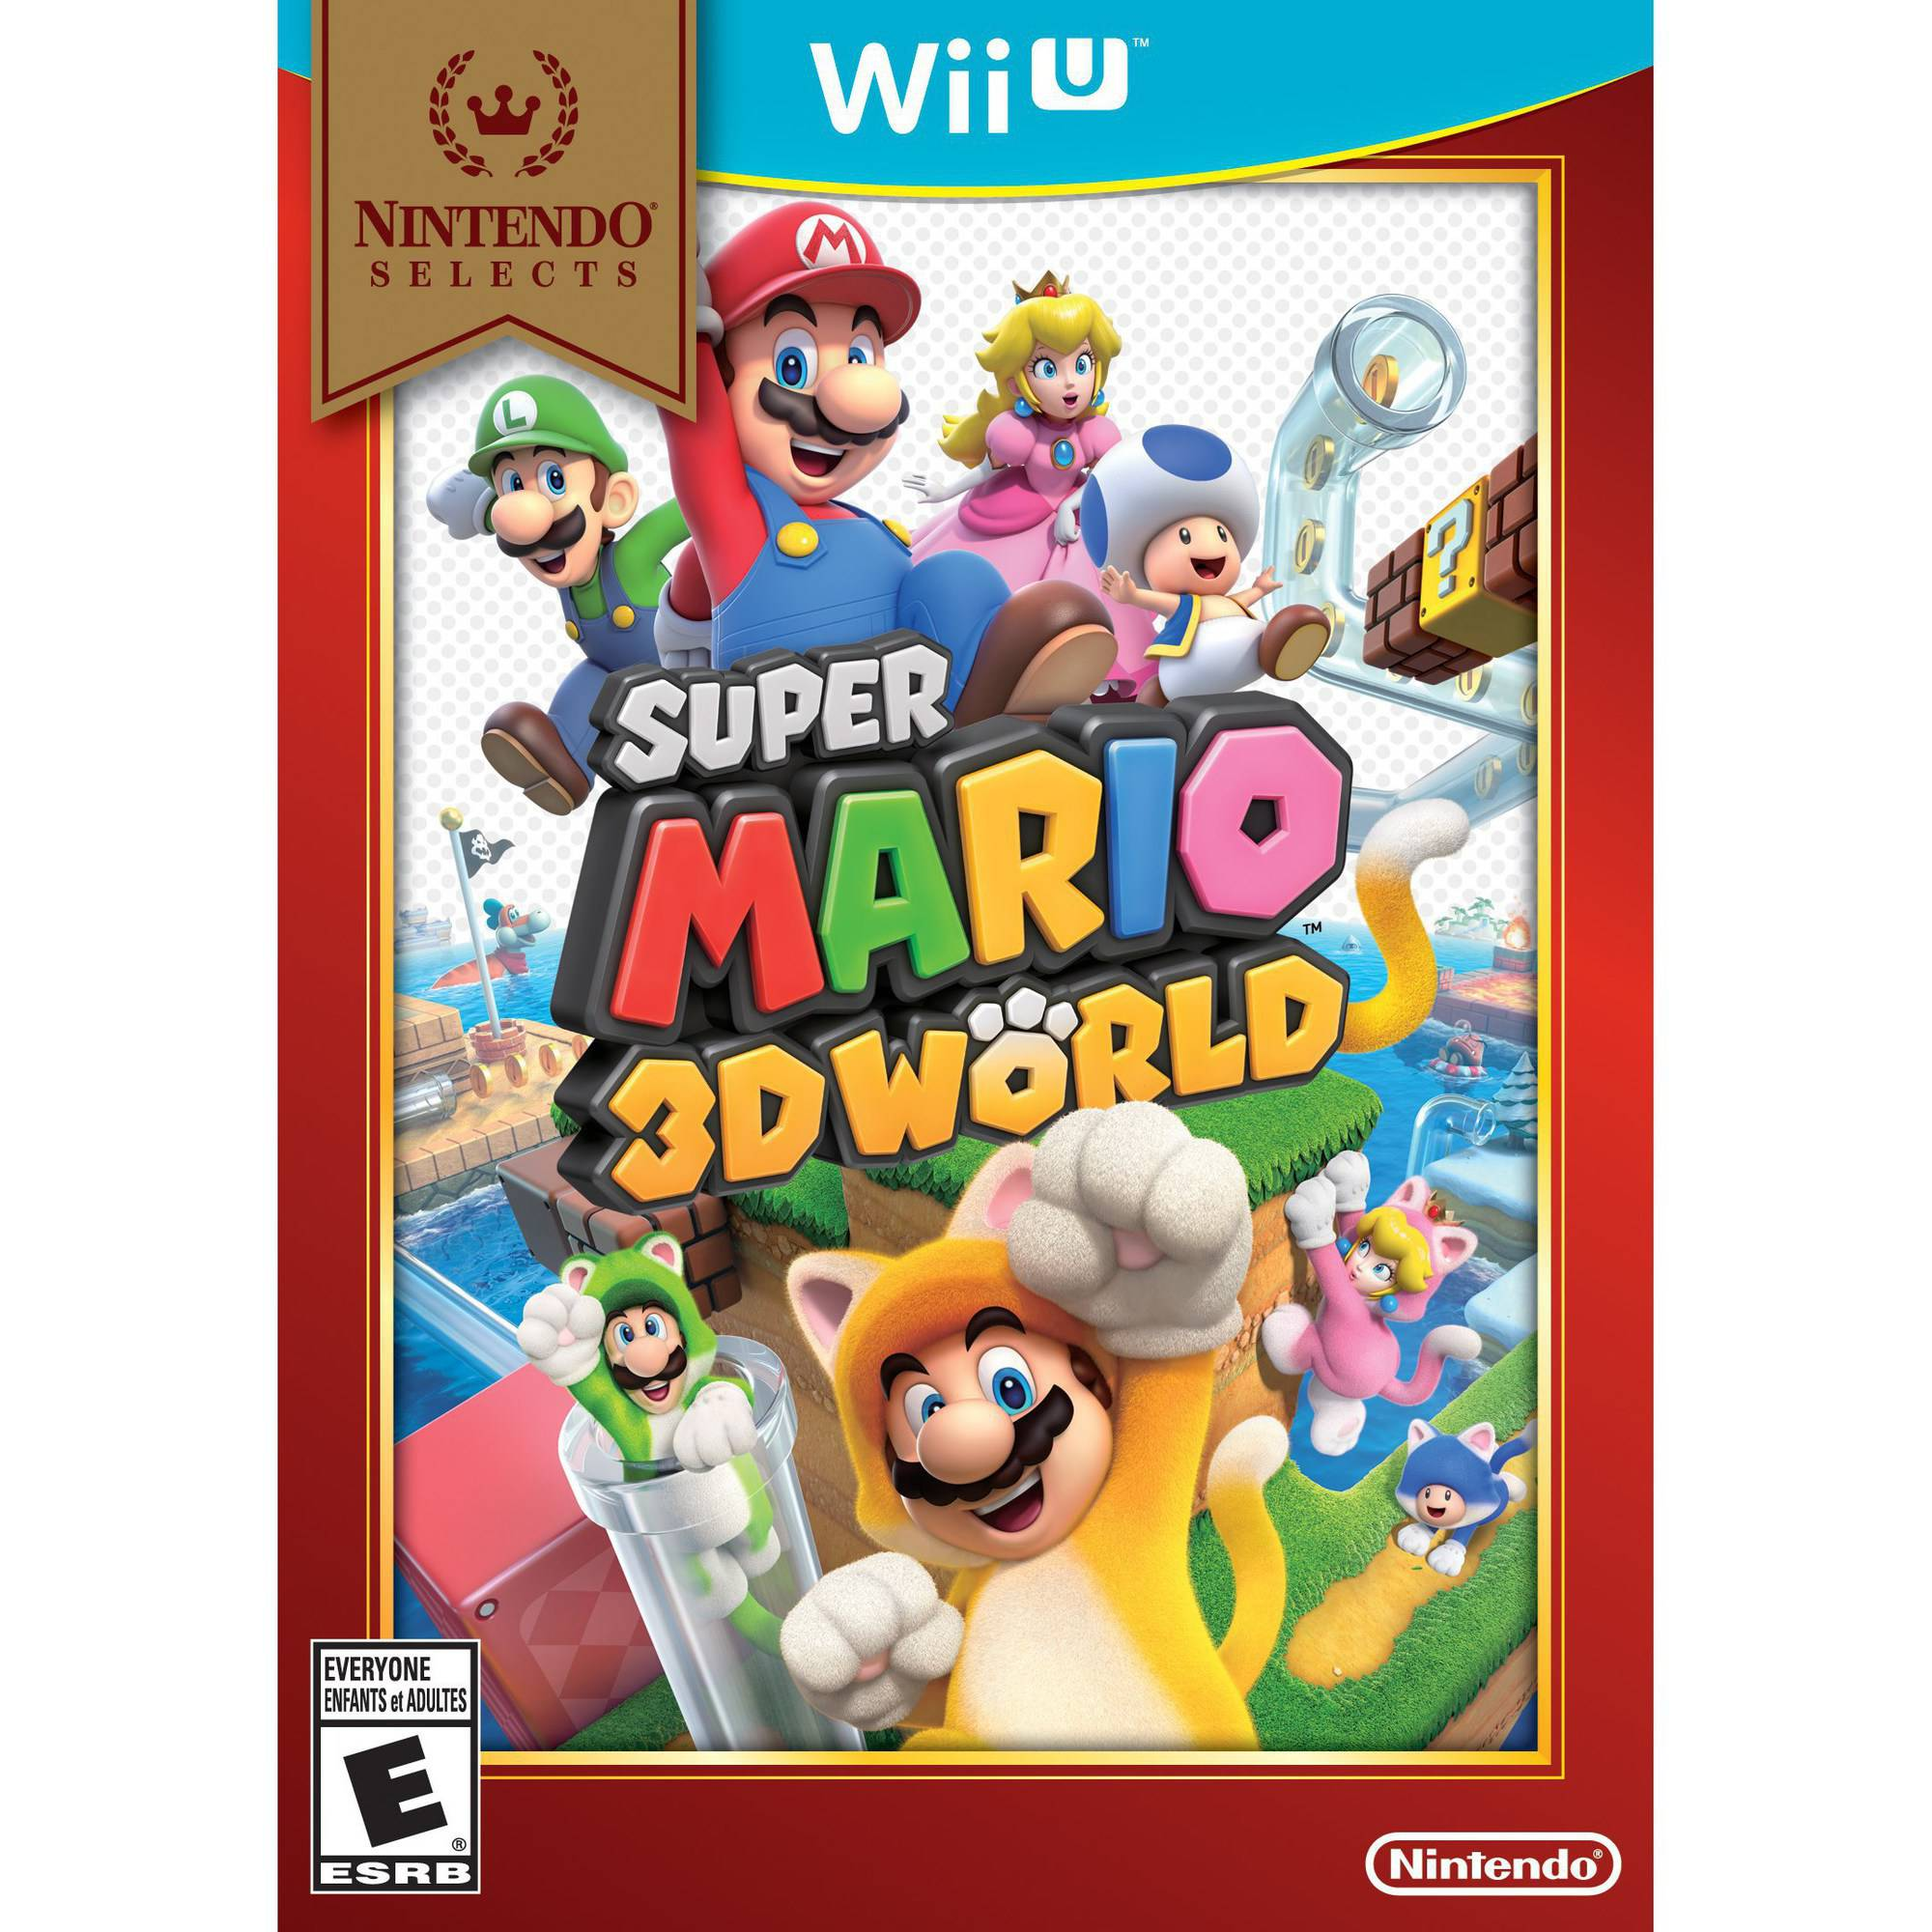 Super Mario 3D World - Nintendo Selects (Wii U)